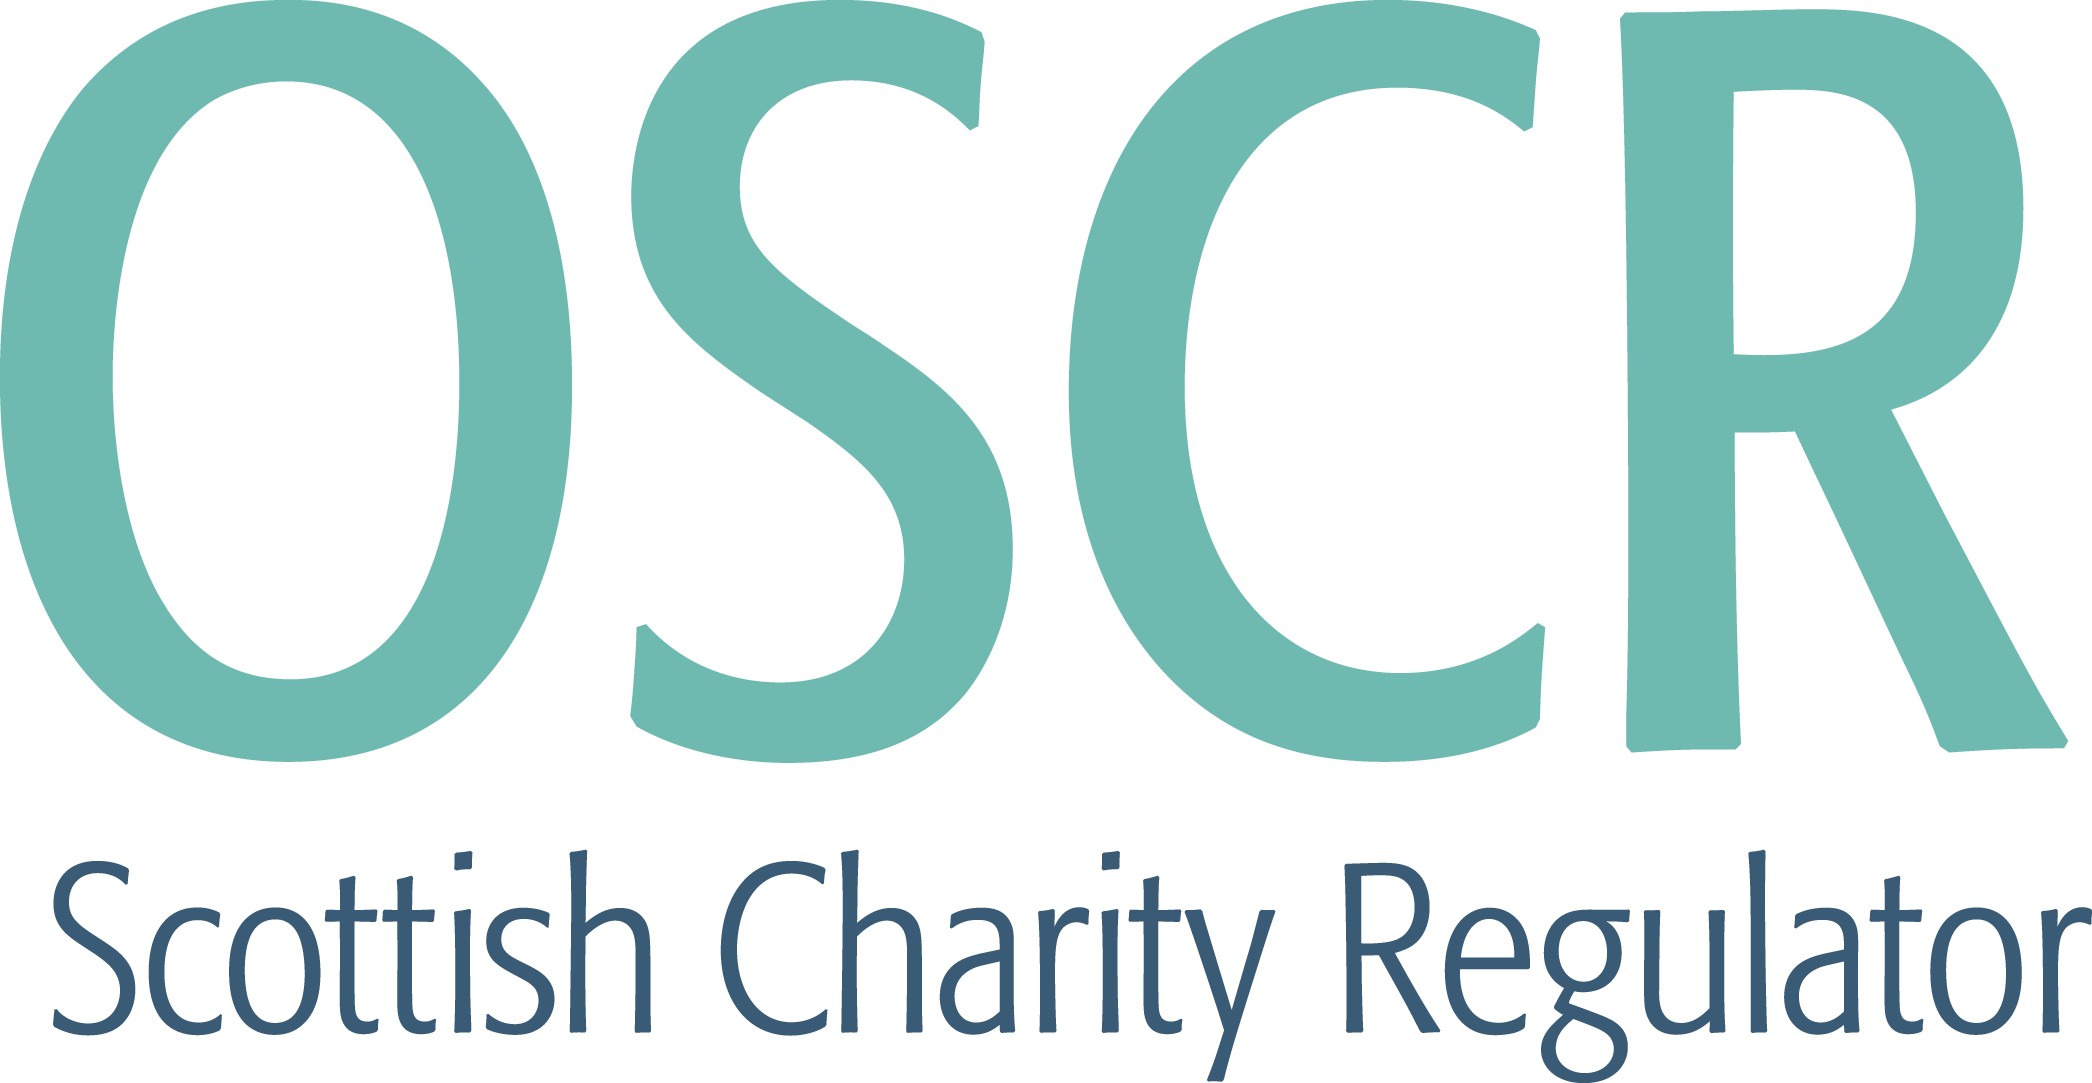 News: OSCR Safeguarding and Notifiable Events Guidance Issued